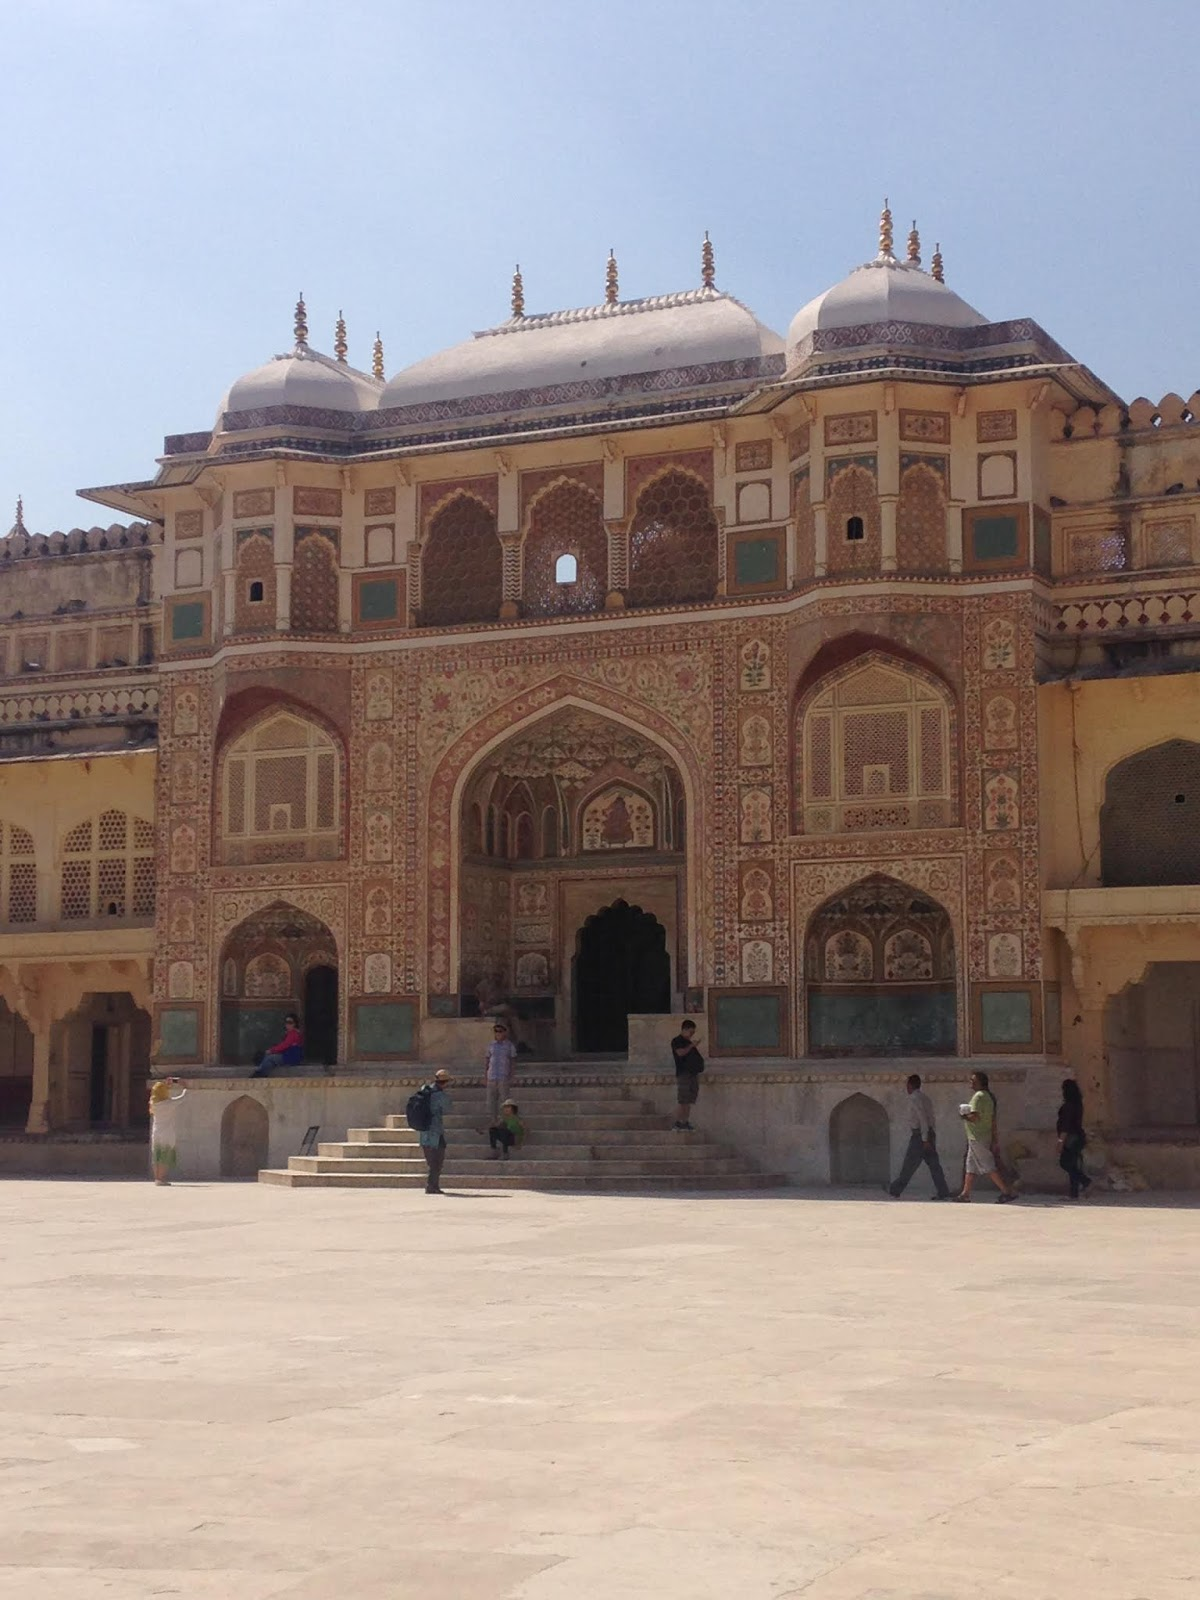 Amer Palace inside the fort